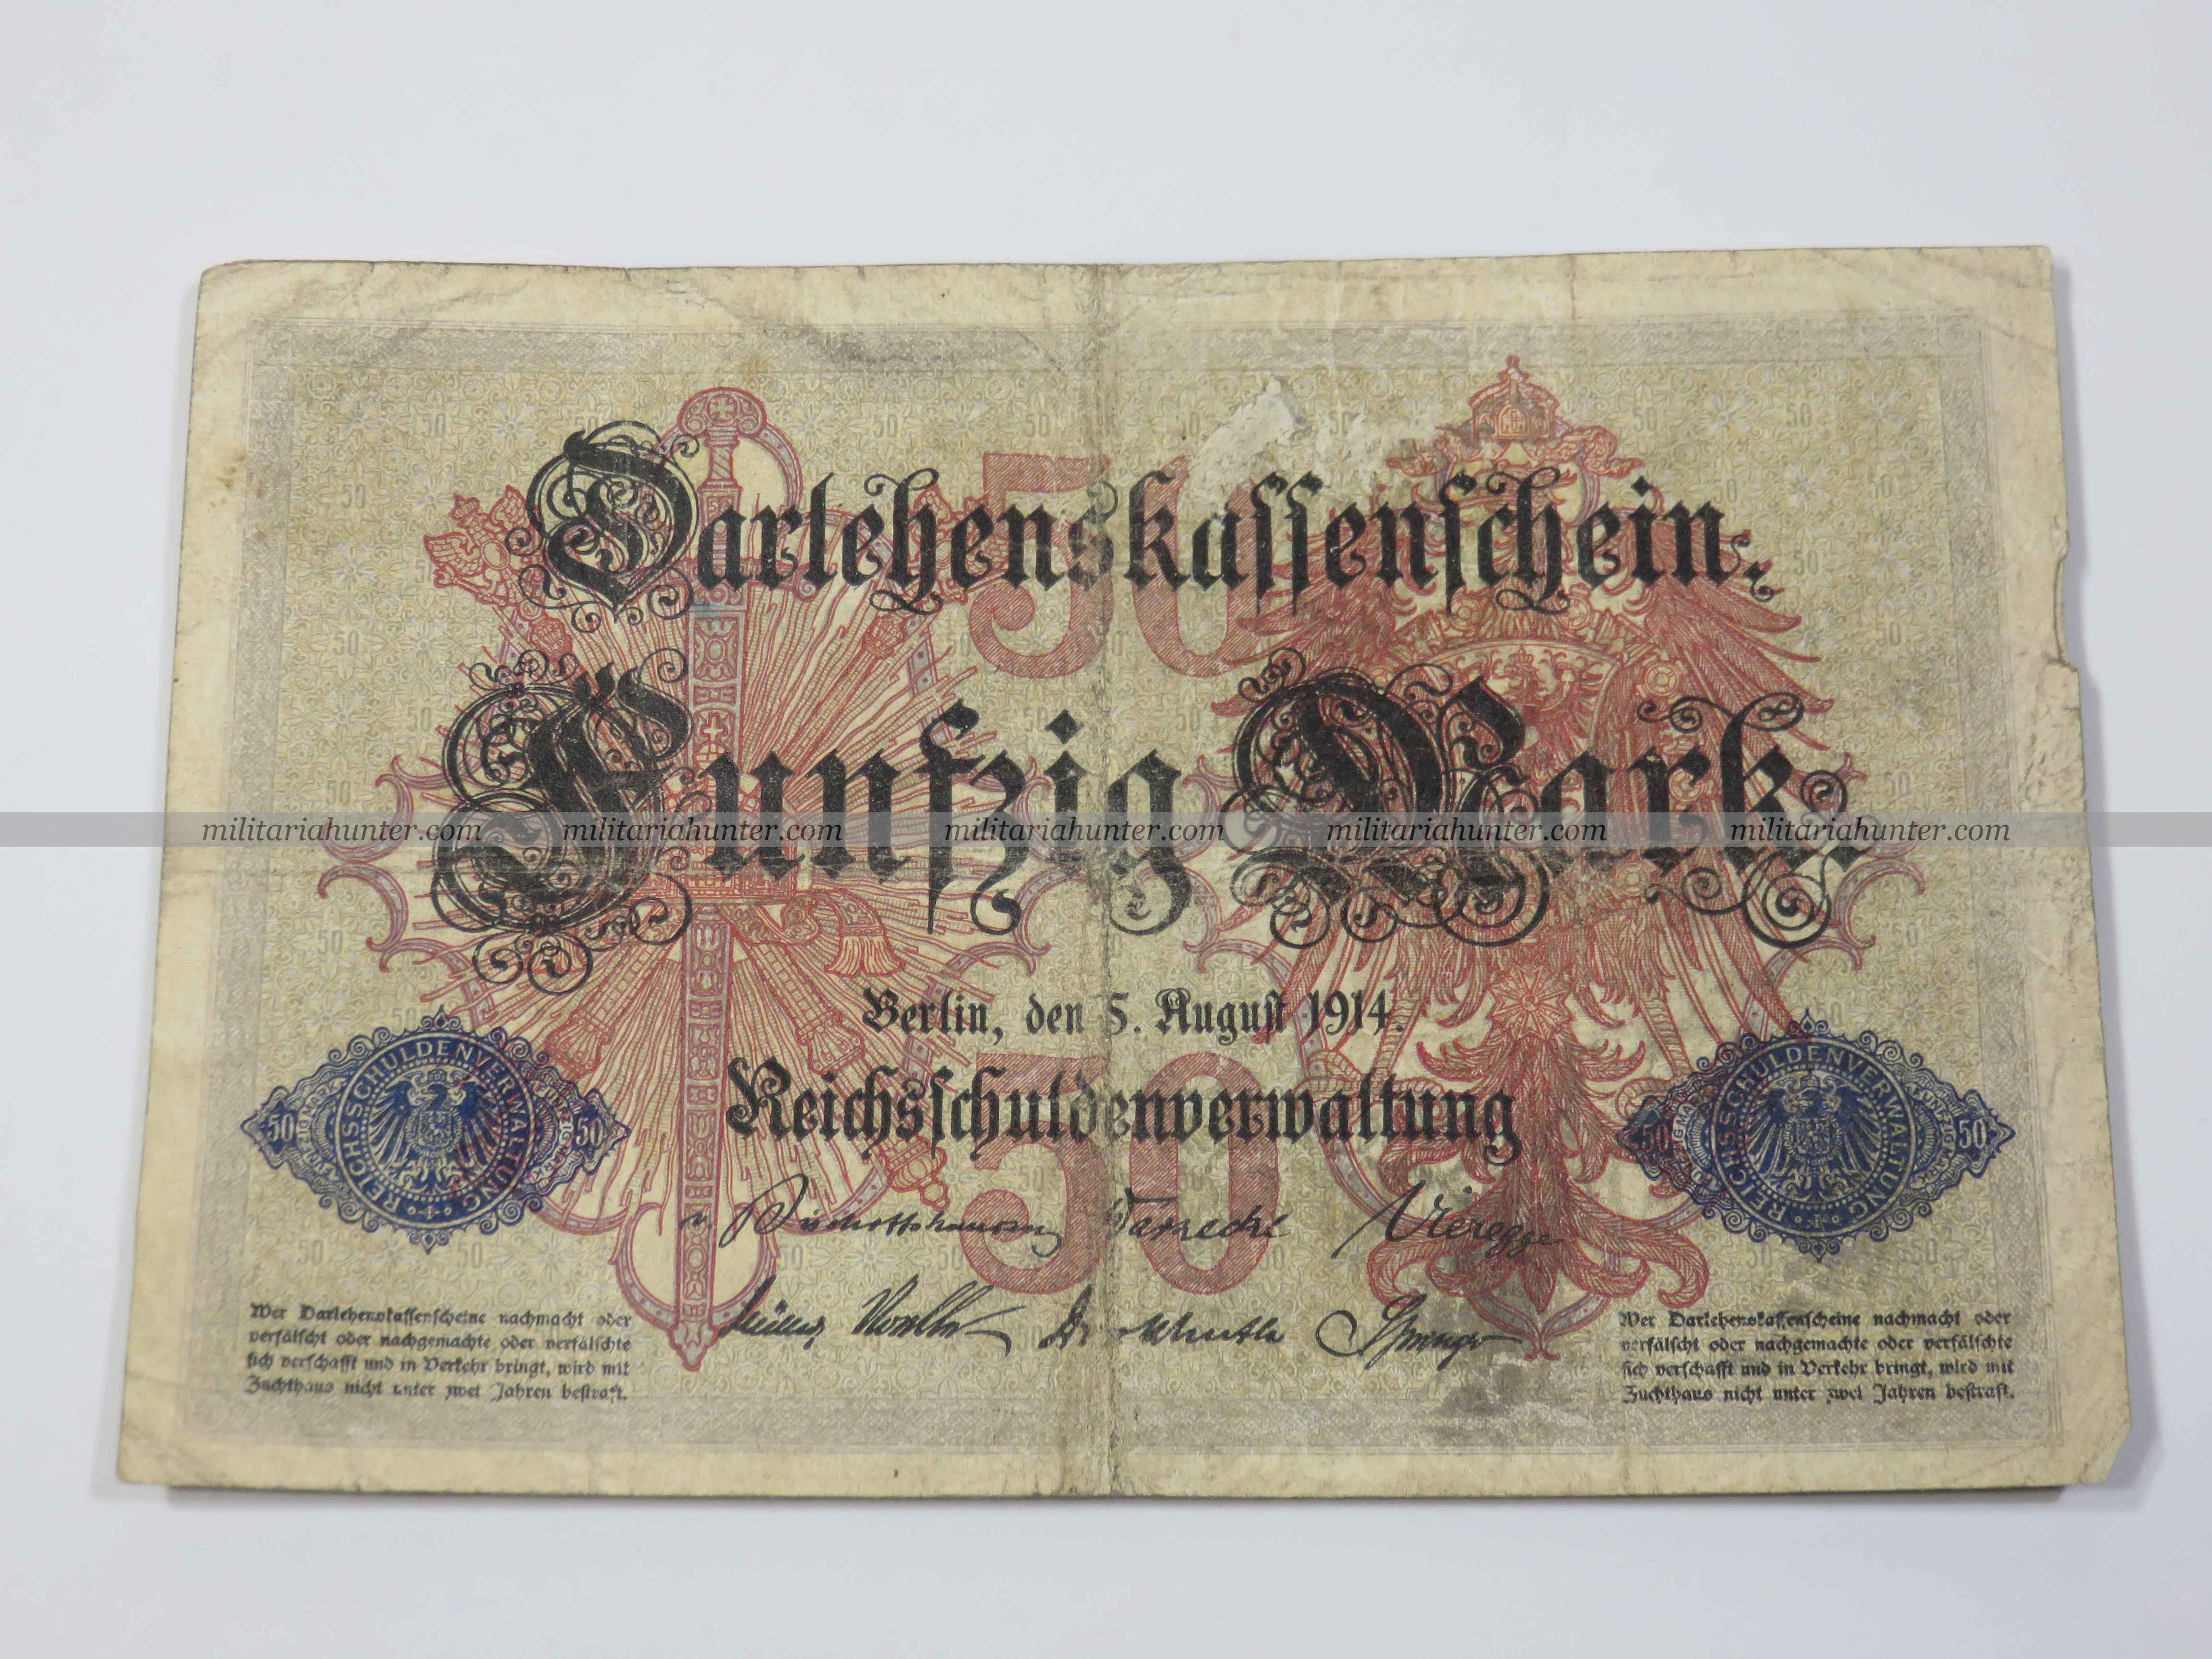 militaria : ww1 german banknote 50 Mark 1914 - billet allemand ww1 de 50 Mark